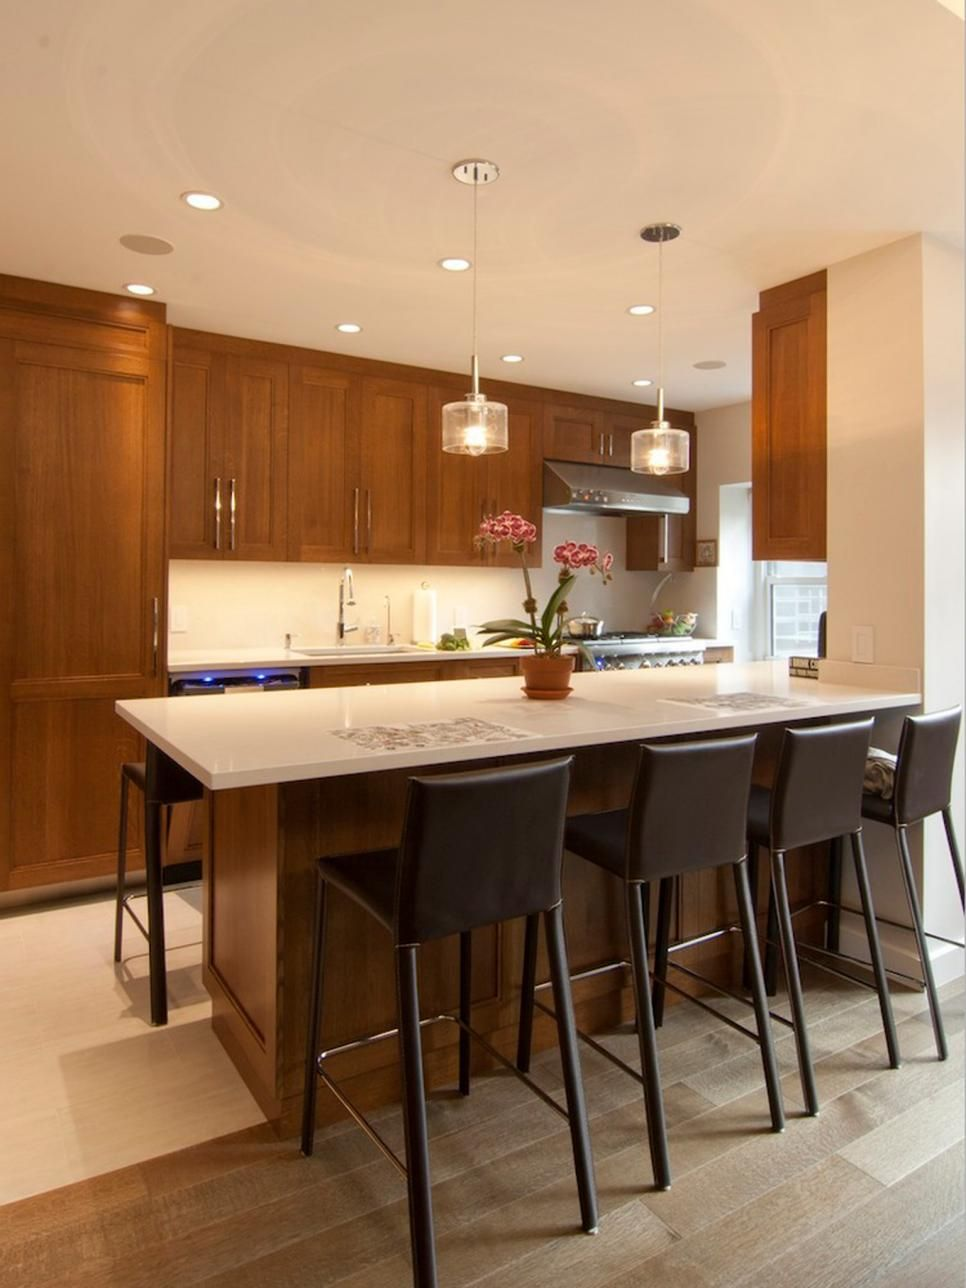 Is Your Galley Style Kitchen Desperate For A Makeover Get Inspired By These Dramatic Before And After Renovations Featured On Hgtv